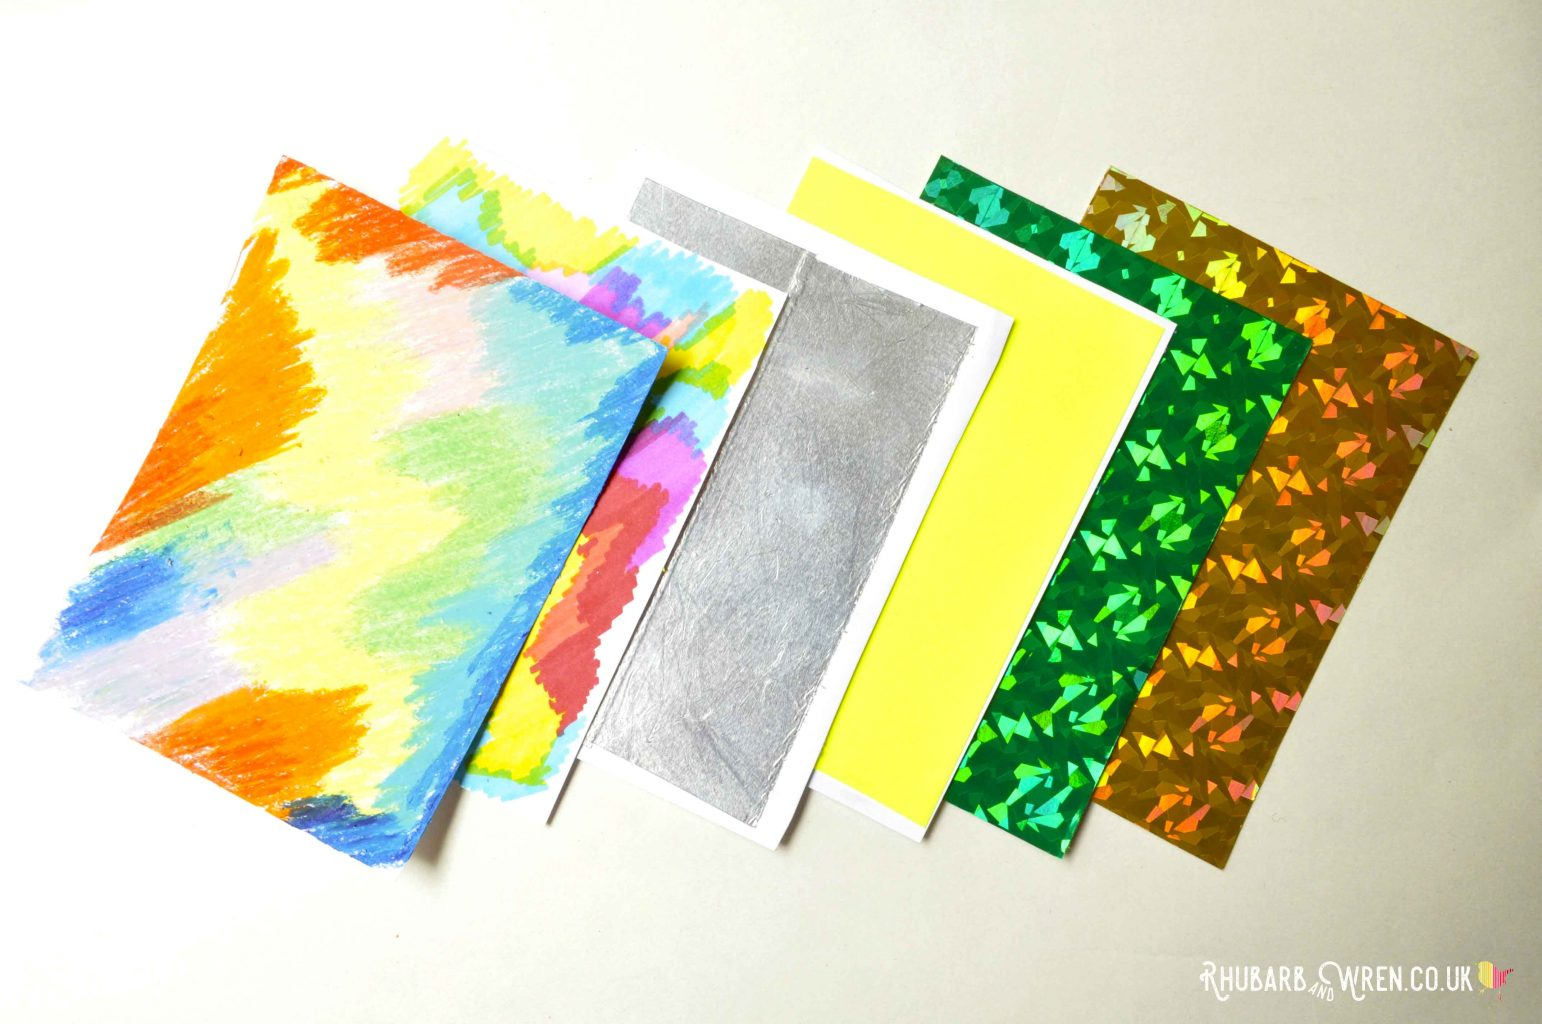 A range of glossy materials for making diy scratch art cards